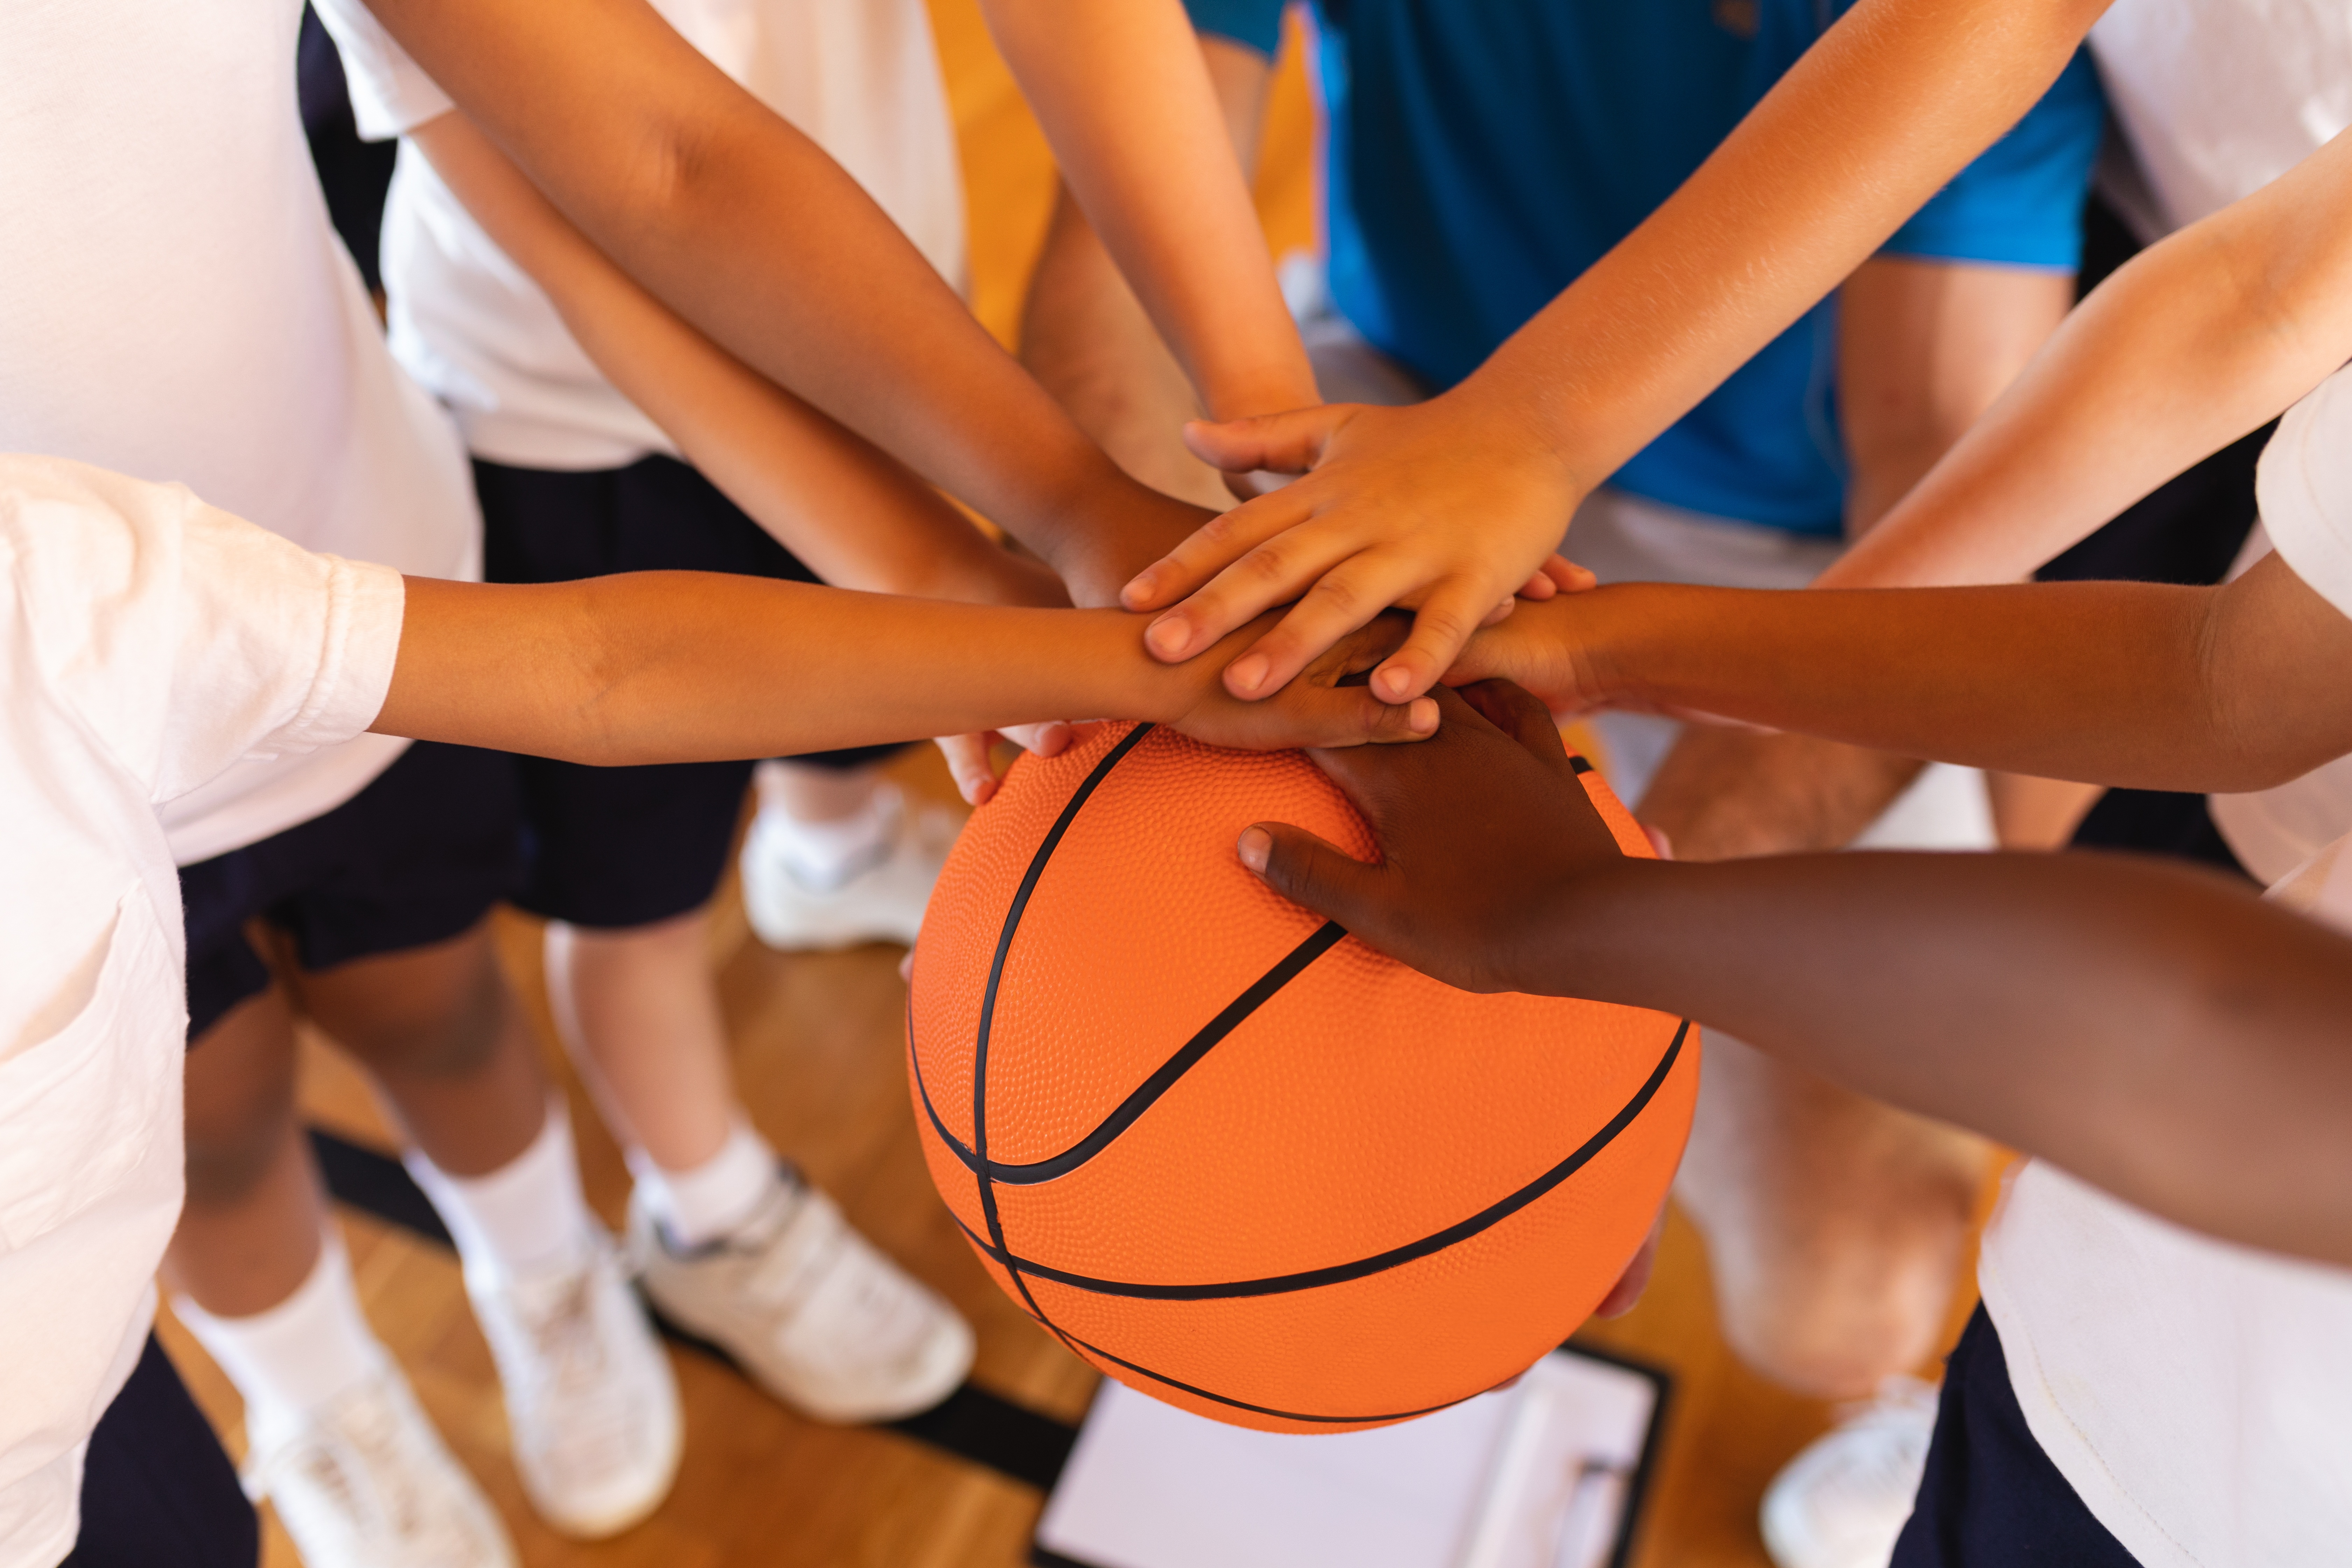 Group of hands on a basketball